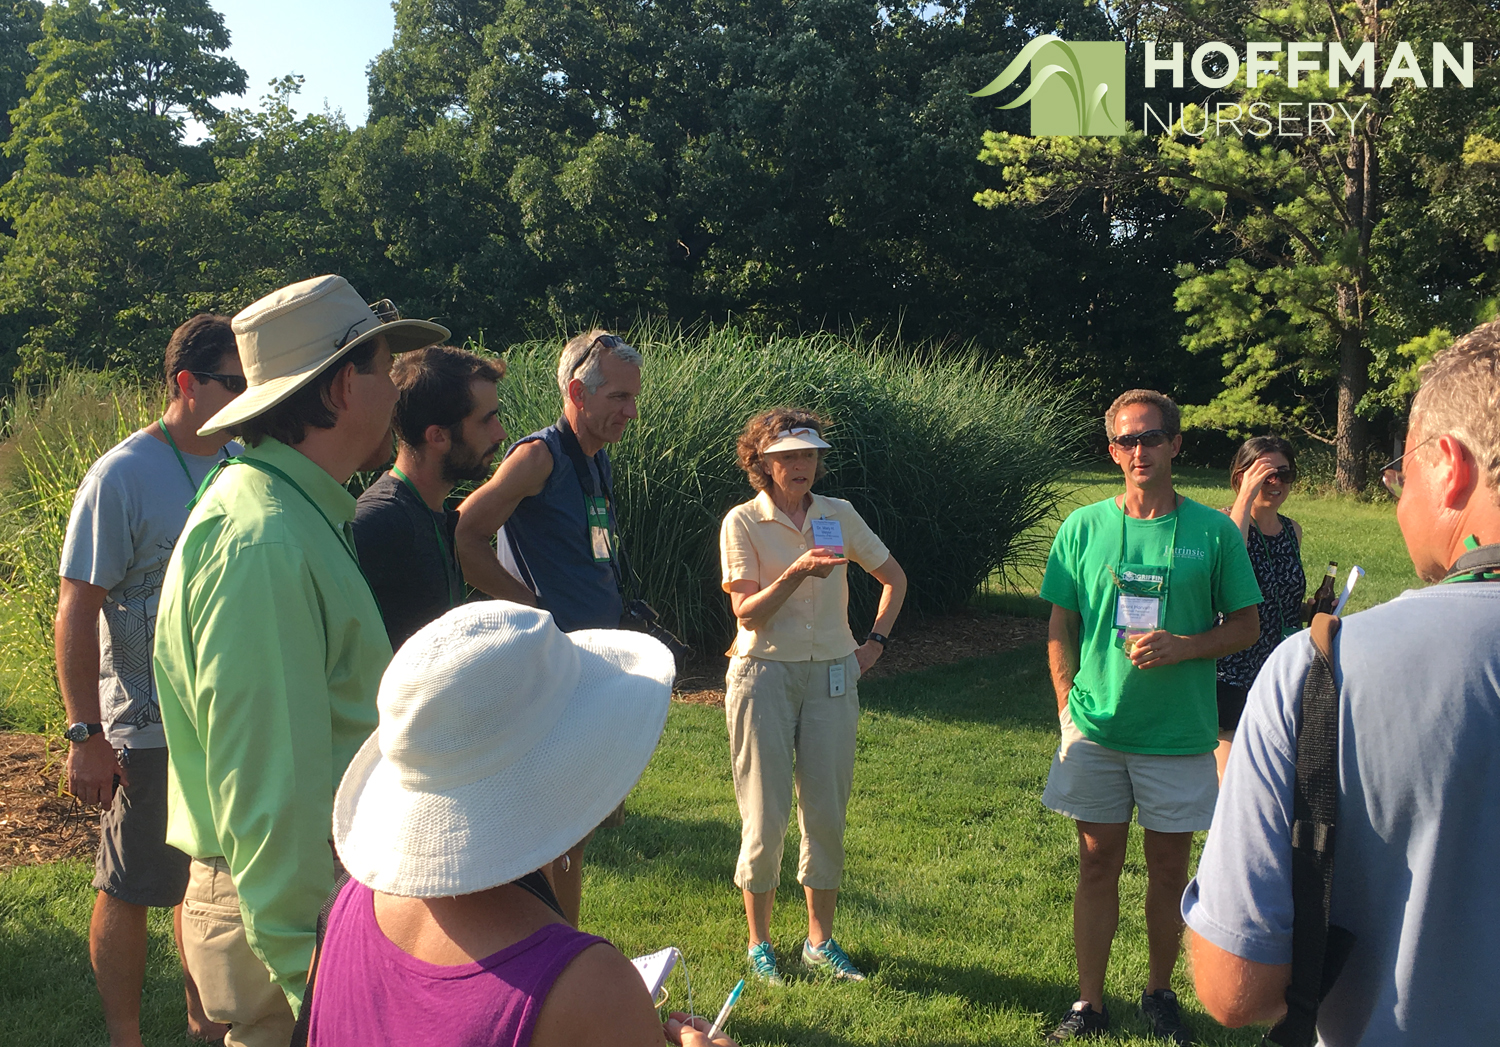 Dr. Mary Meyer, who oversees the grass collection, takes symposium attendees on a tour of the site.